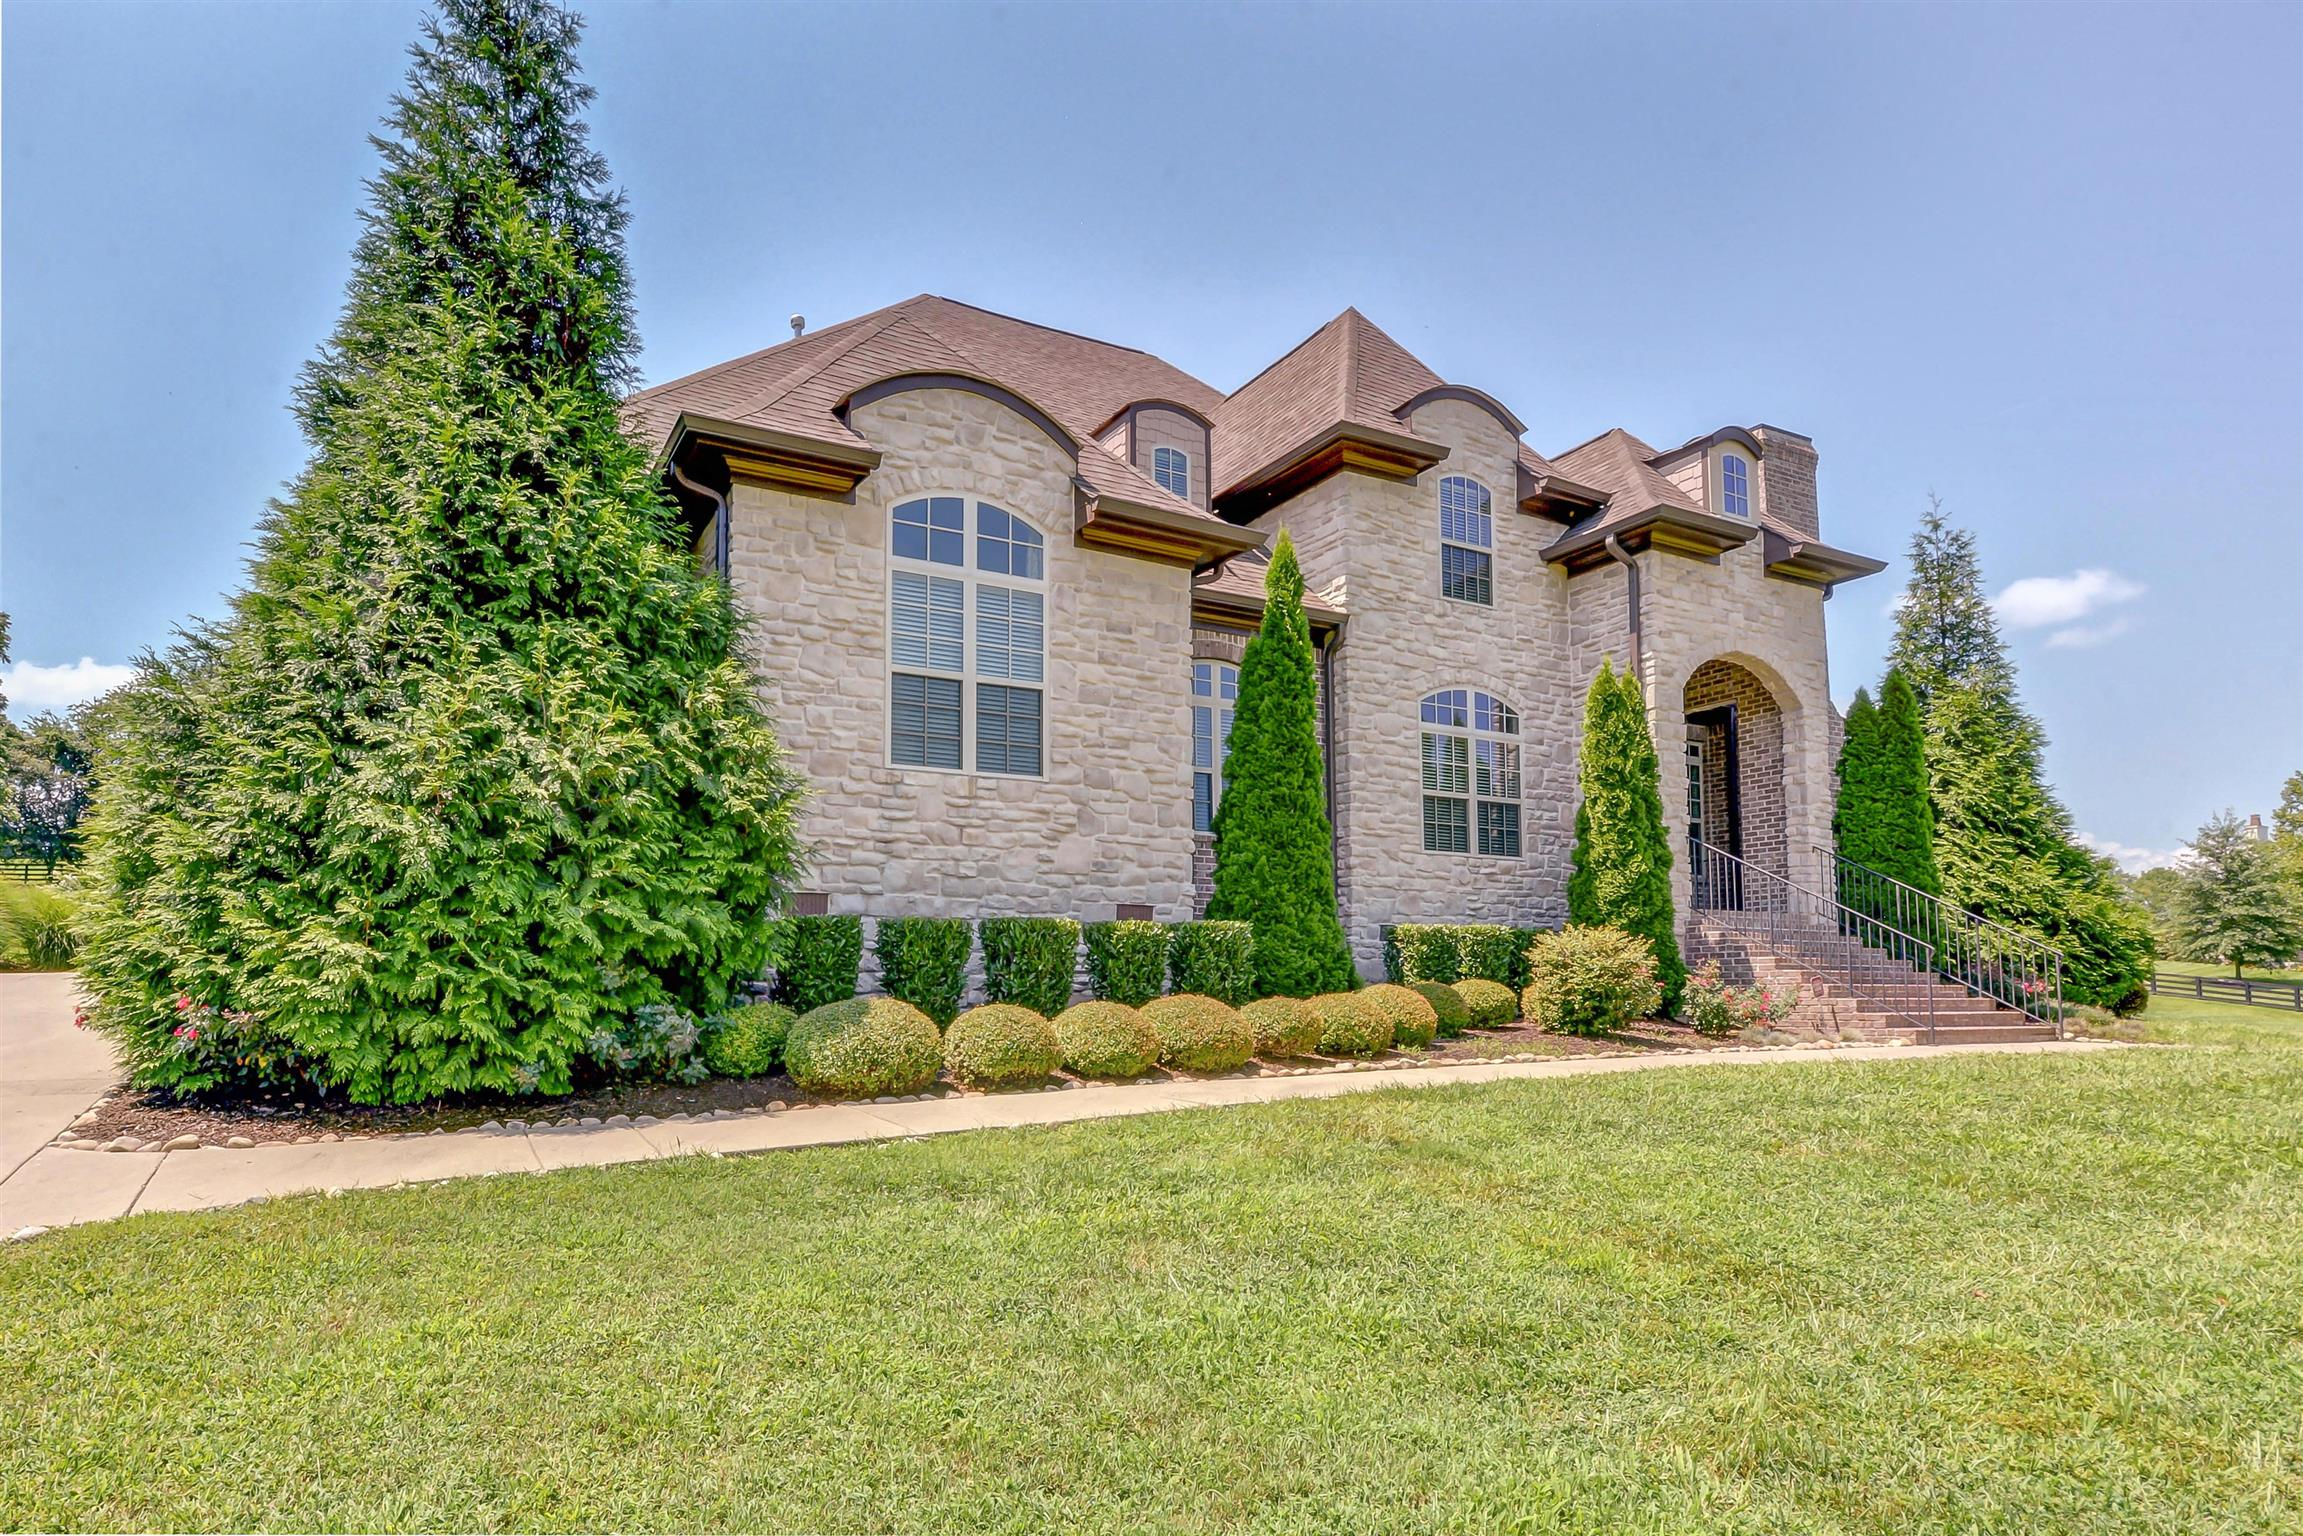 7201 Prairie Falcon Dr, Arrington, TN 37014 - Arrington, TN real estate listing